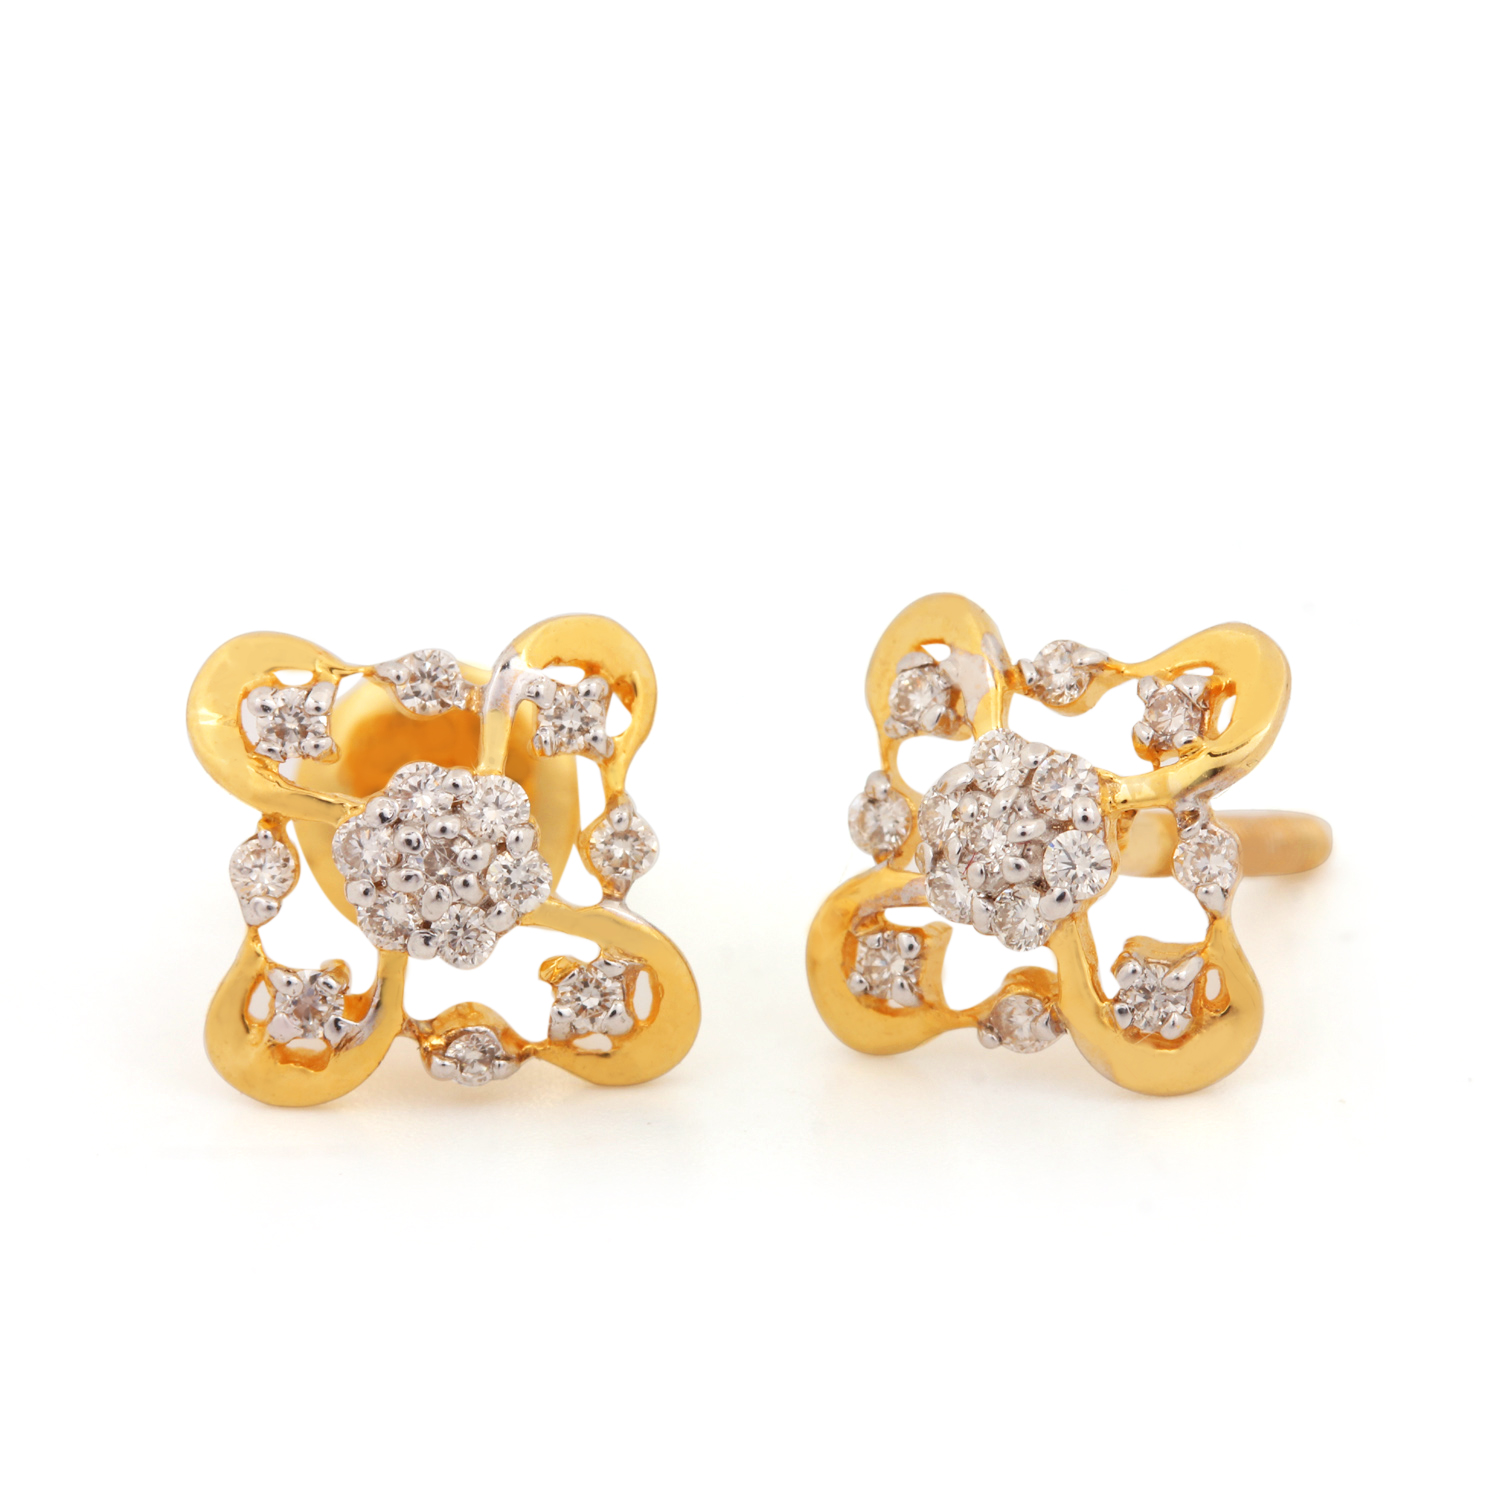 Different Design Of Earring